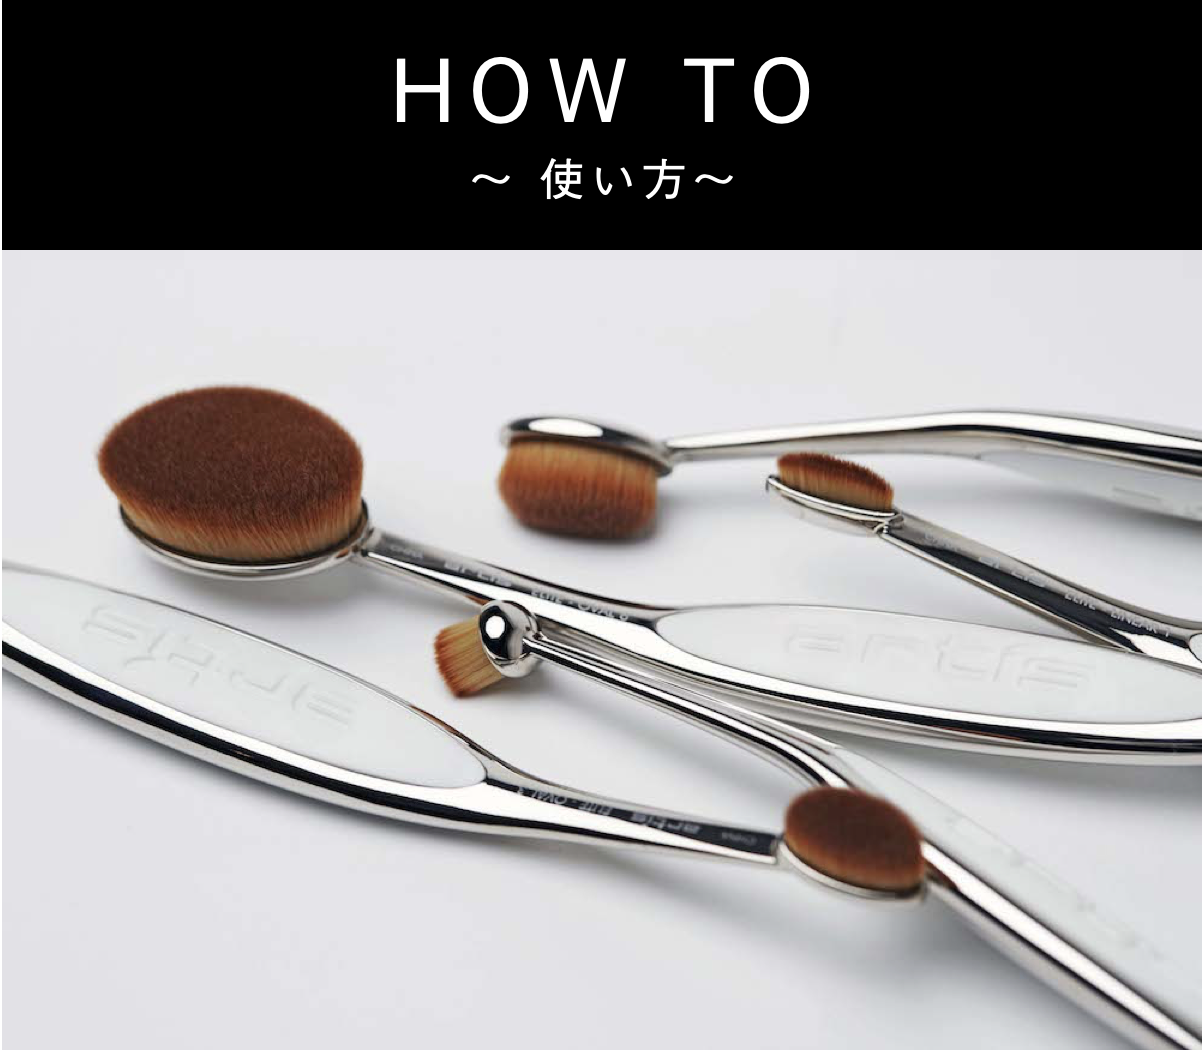 HOW TO 〜使い方〜